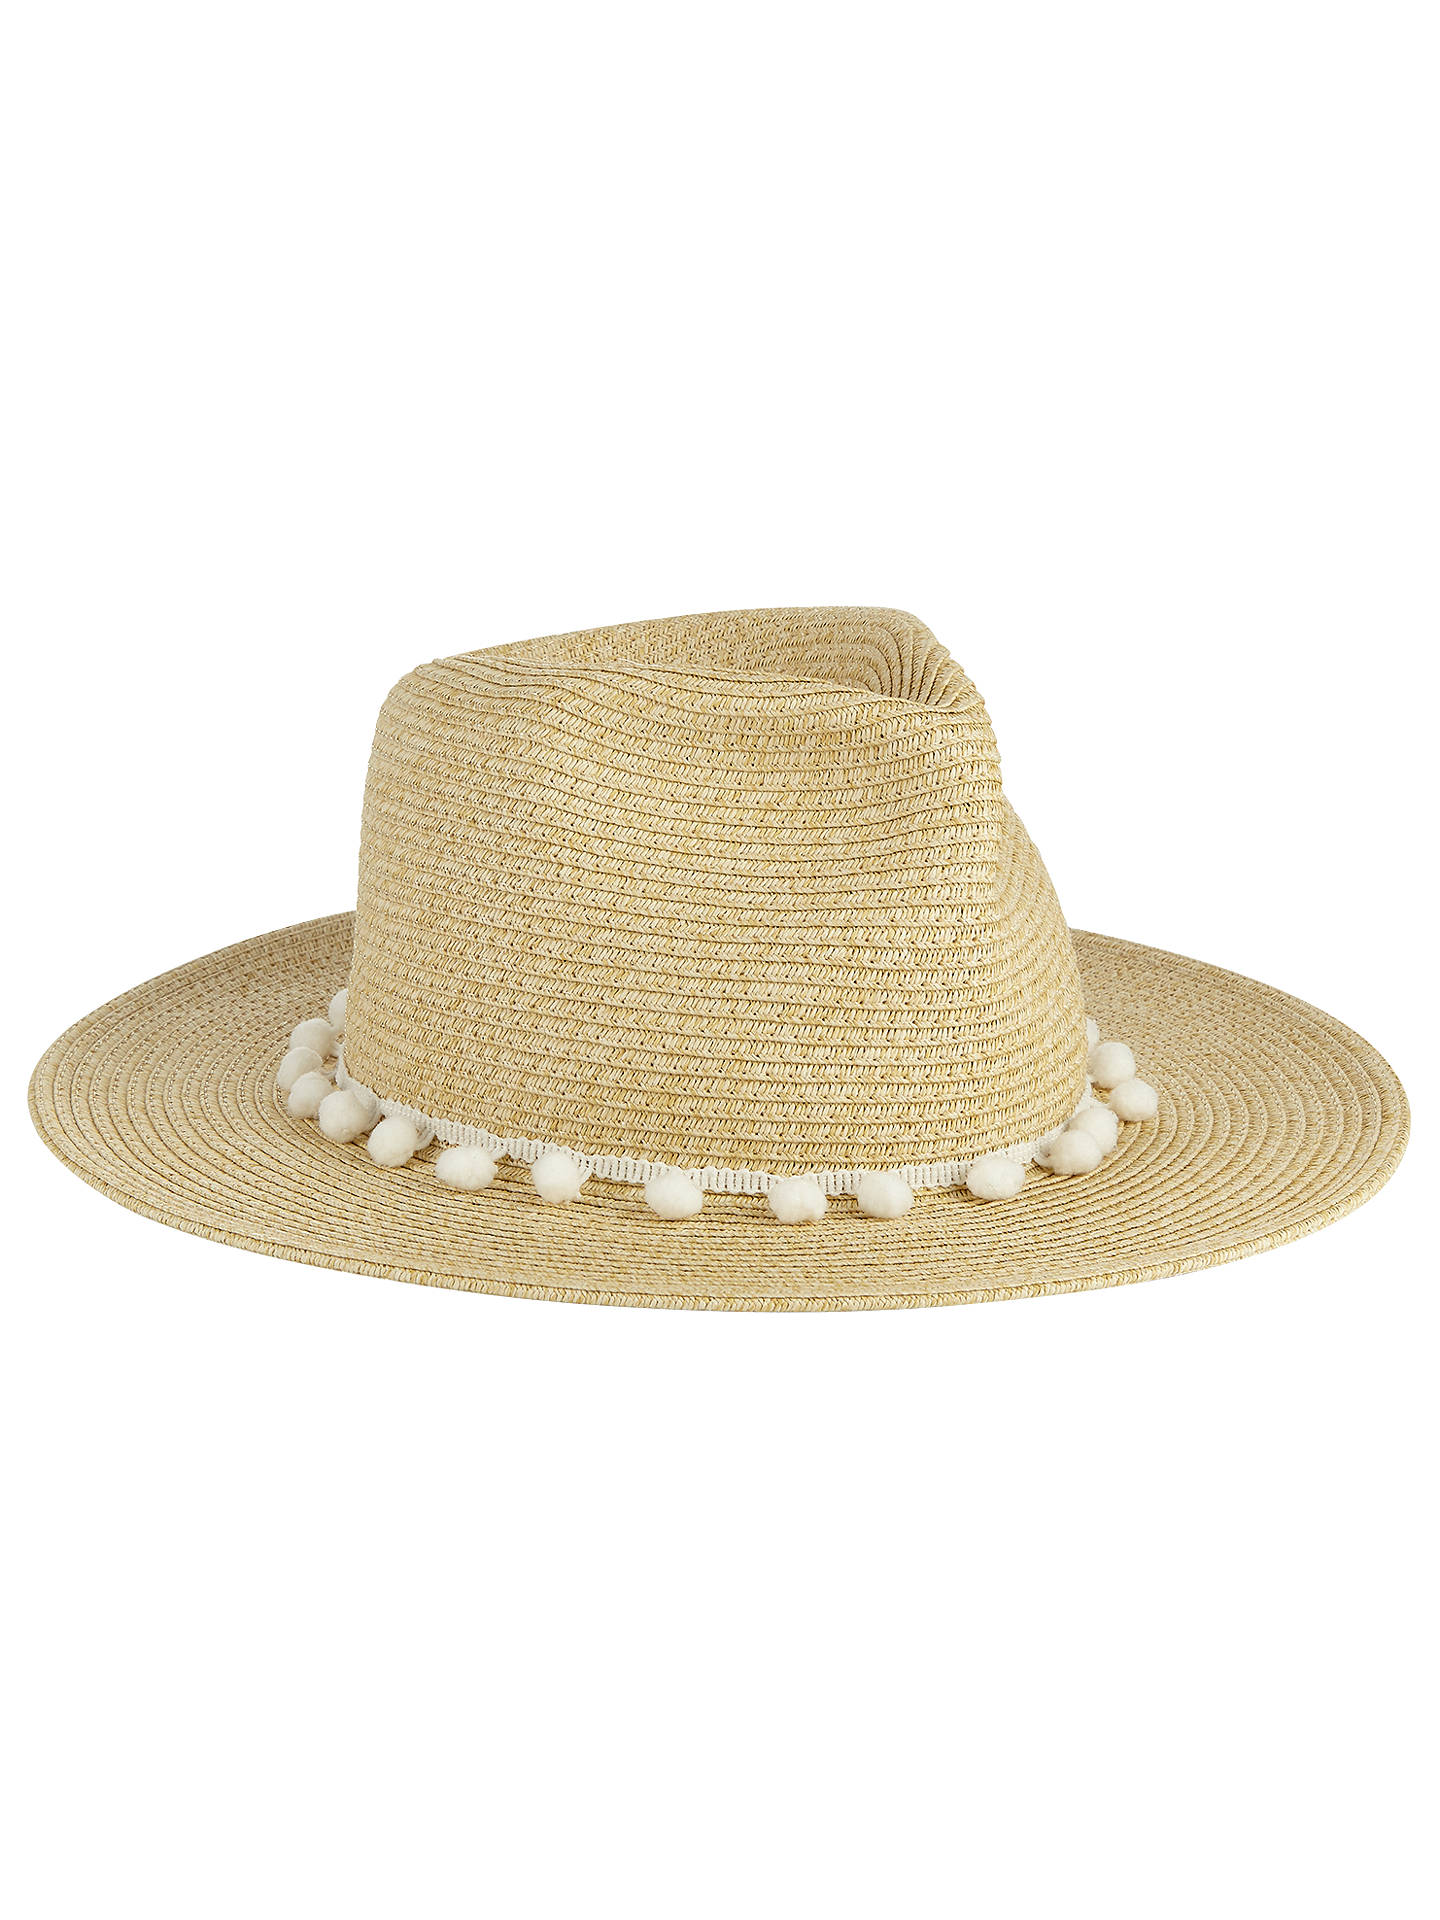 983cff488ed Buy Phase Eight Pom Pom Sun Hat